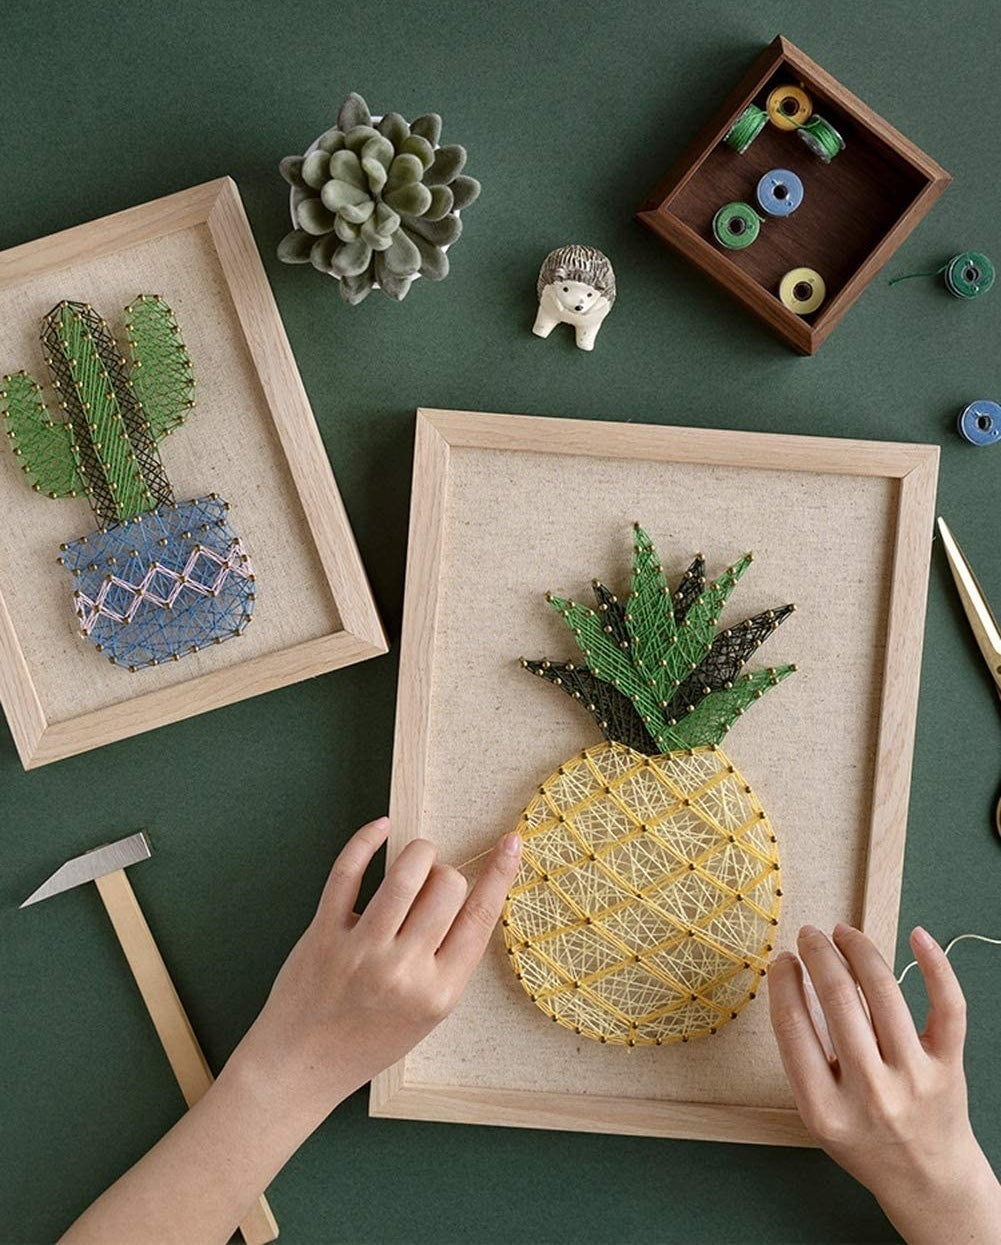 A model working on pineapple string art